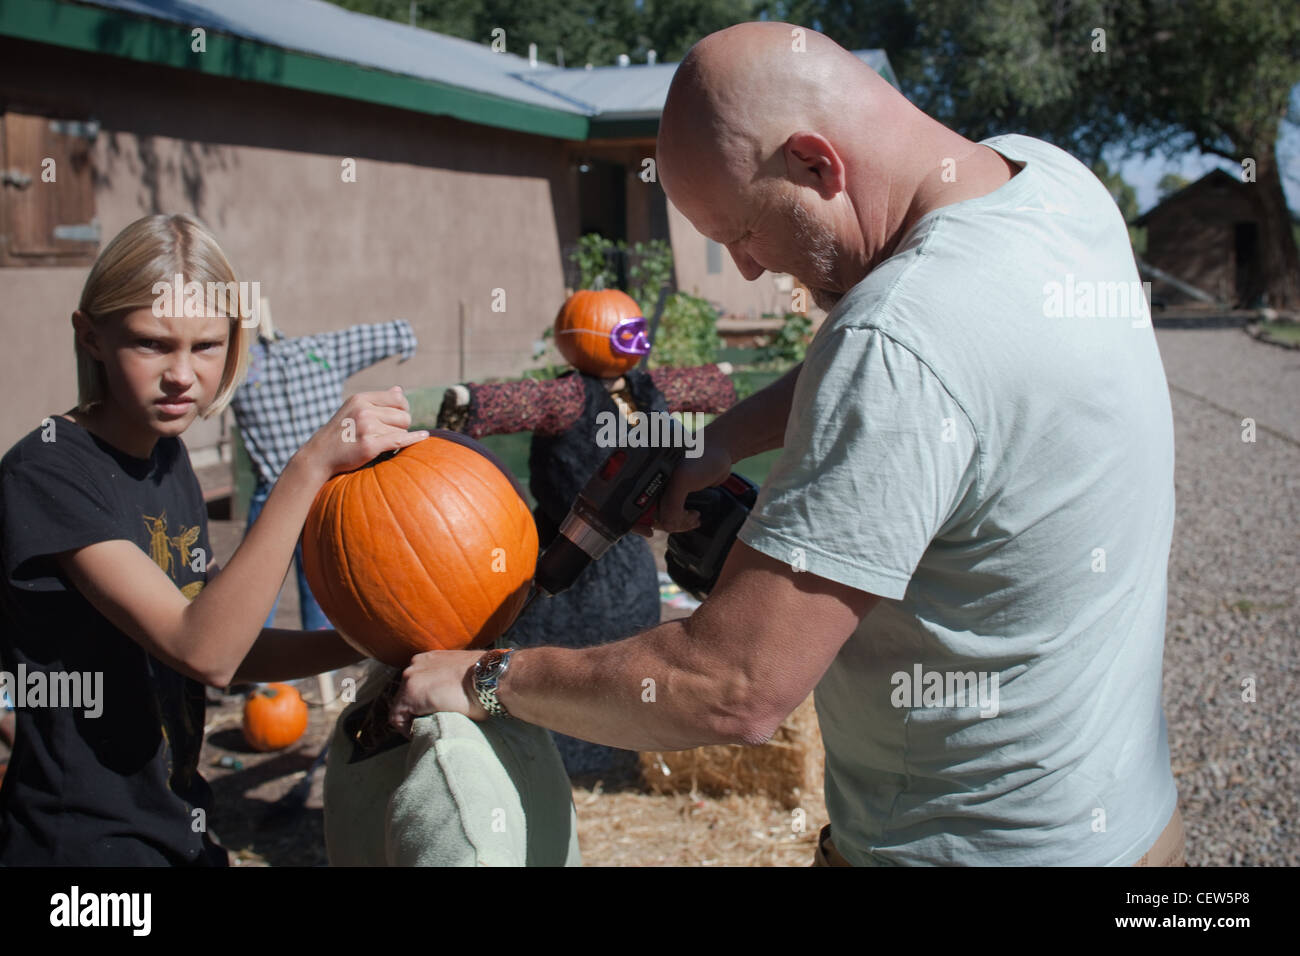 Father and daughter working on making scare crow with pumpkin. - Stock Image